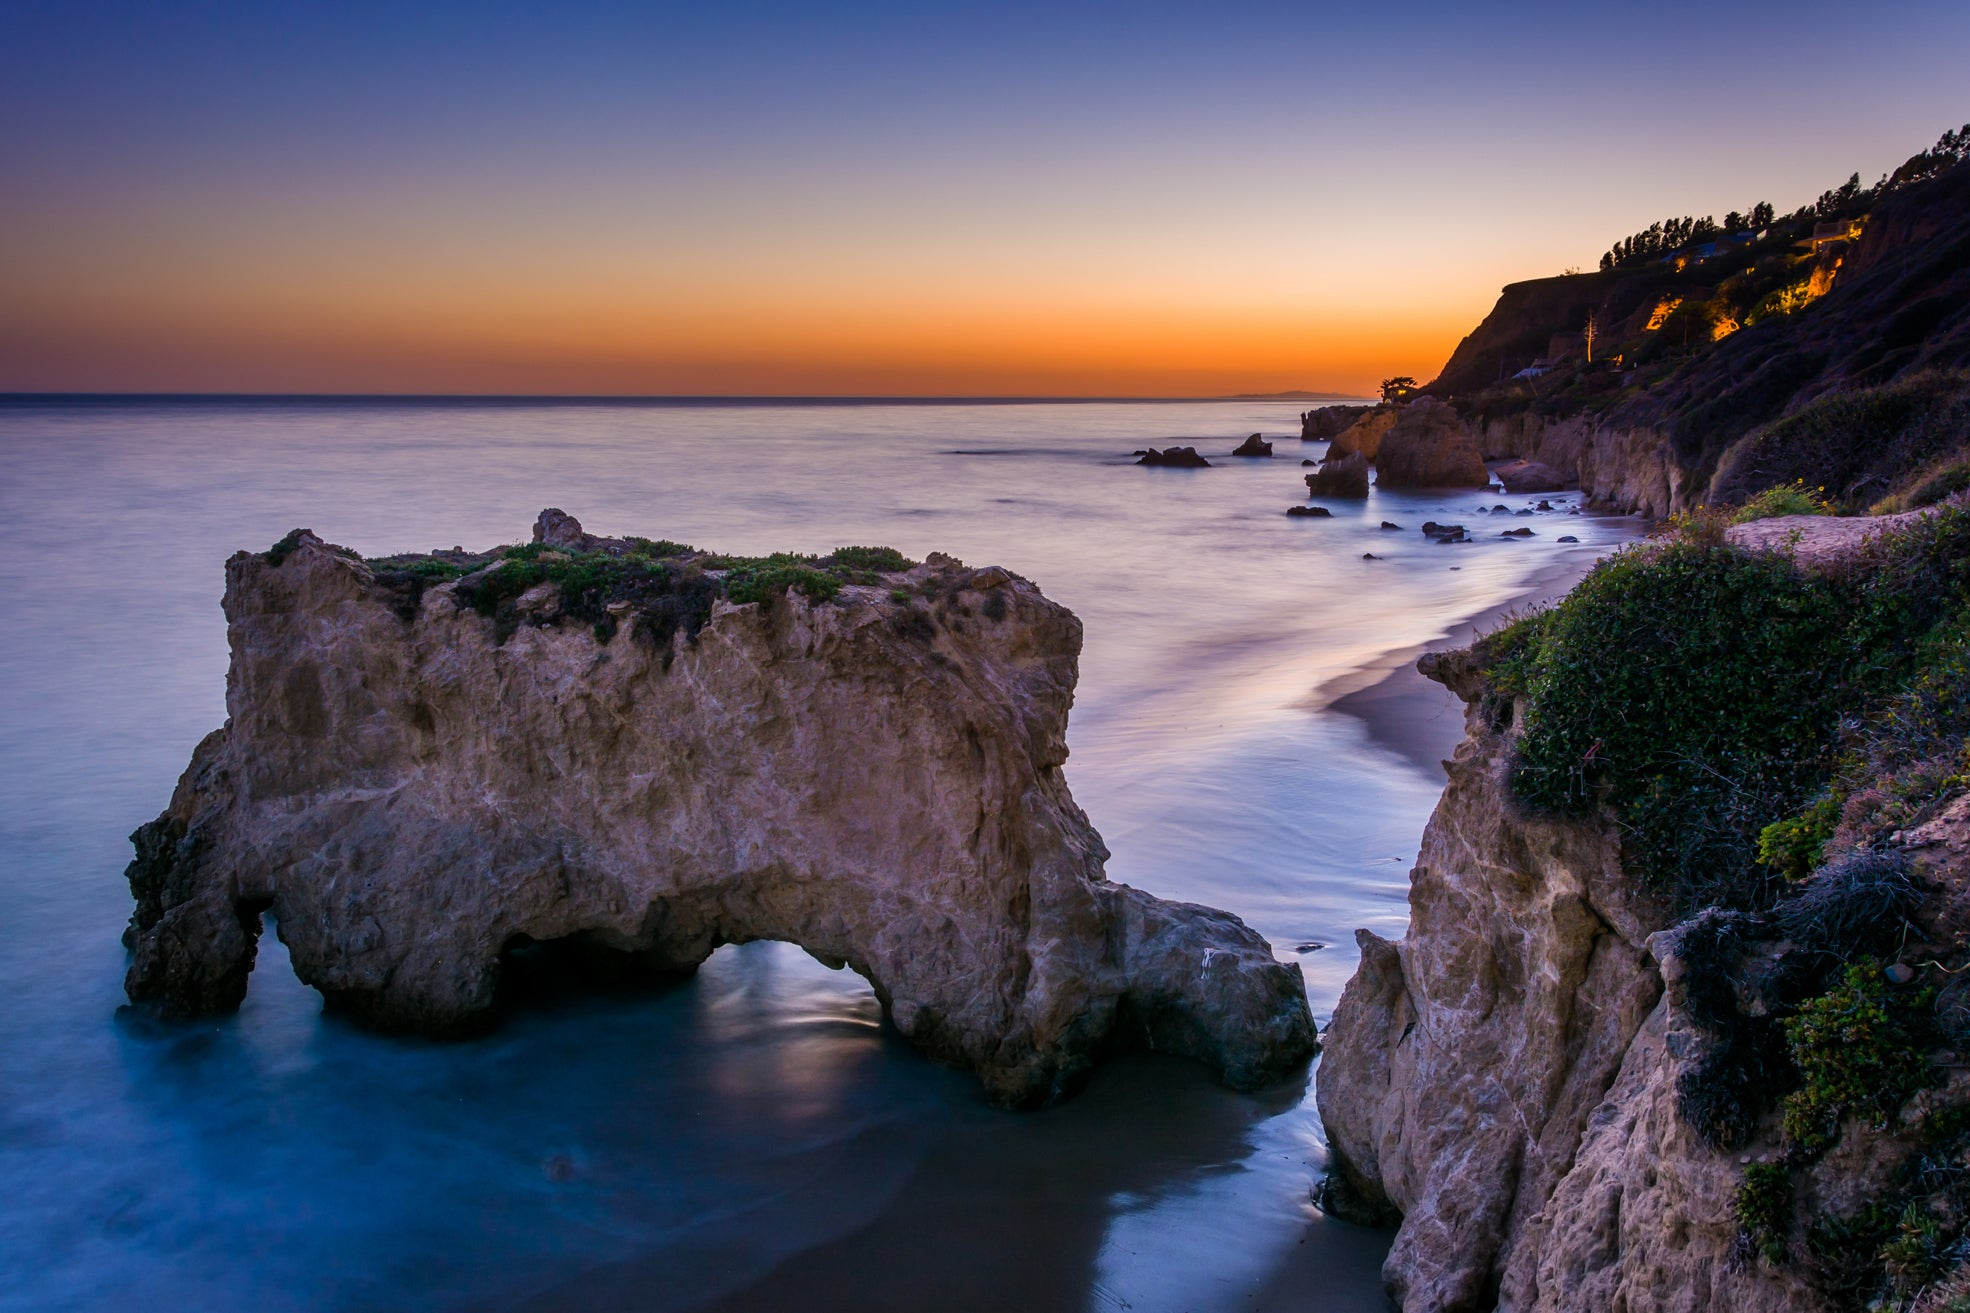 best beaches in malibu el matatdor